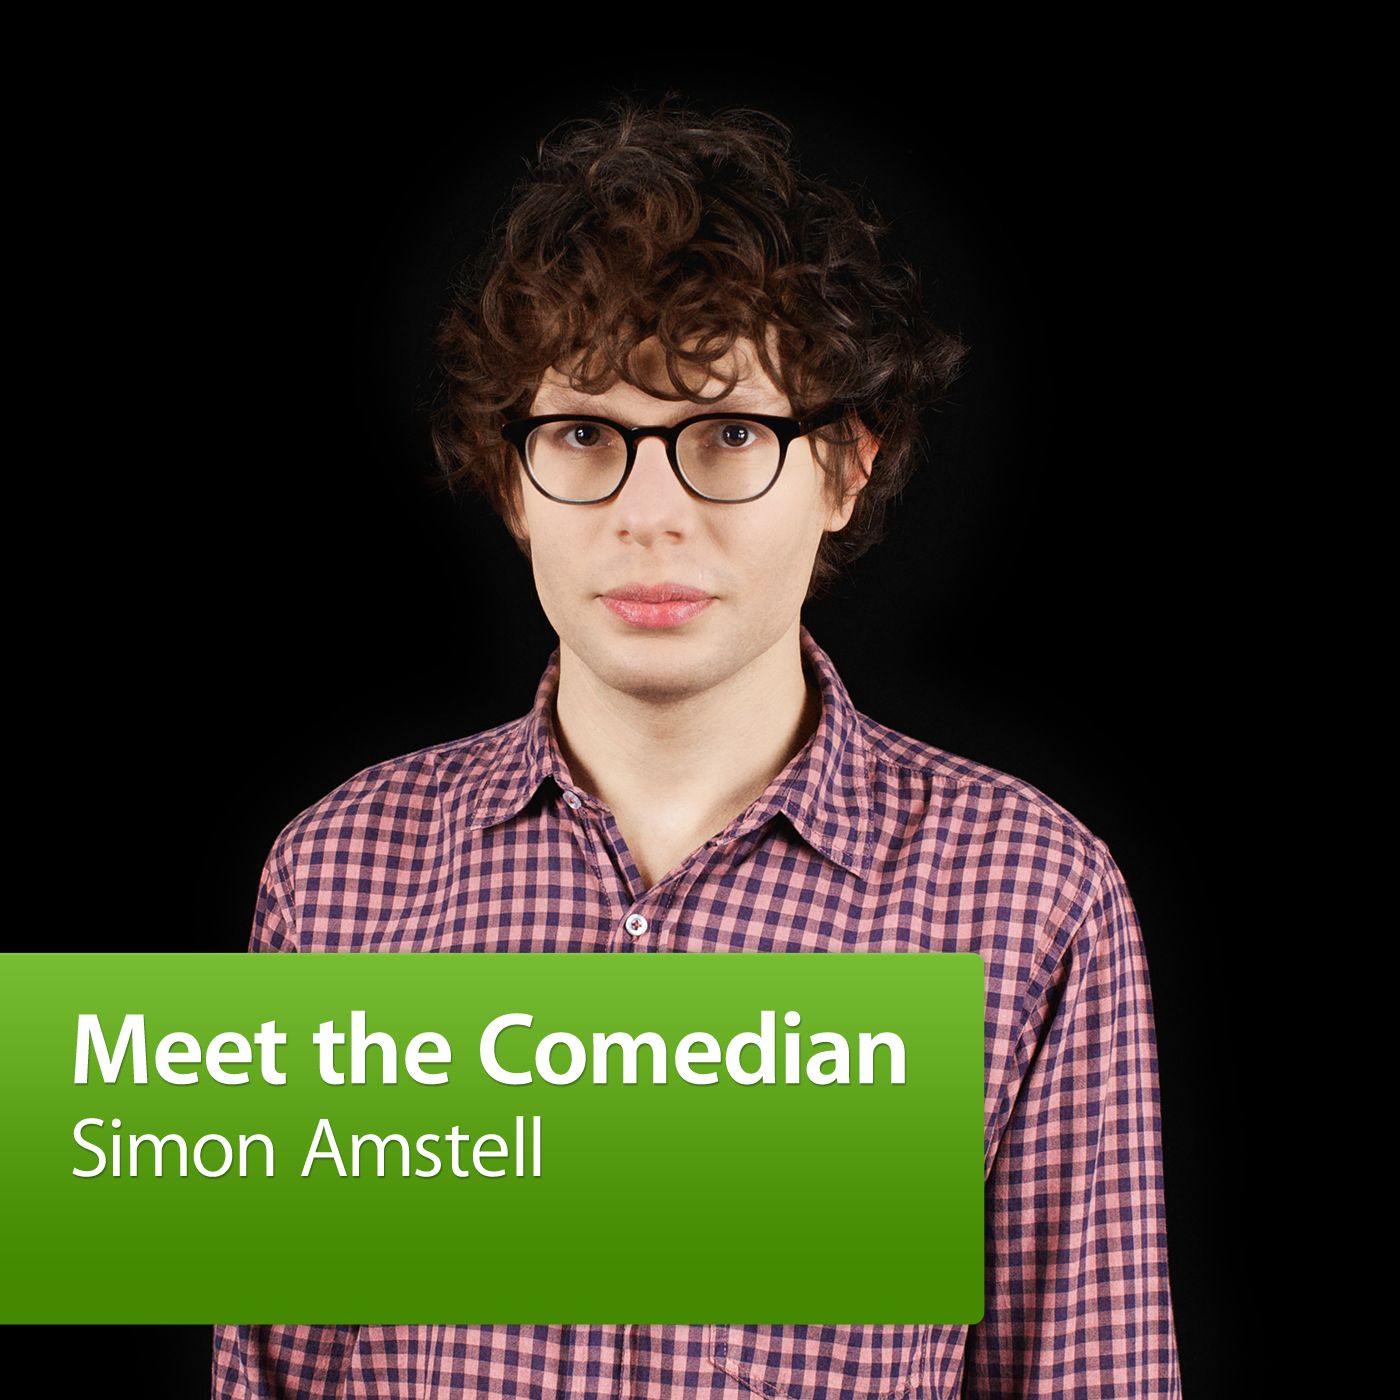 Simon Amstell: Meet the Comedian